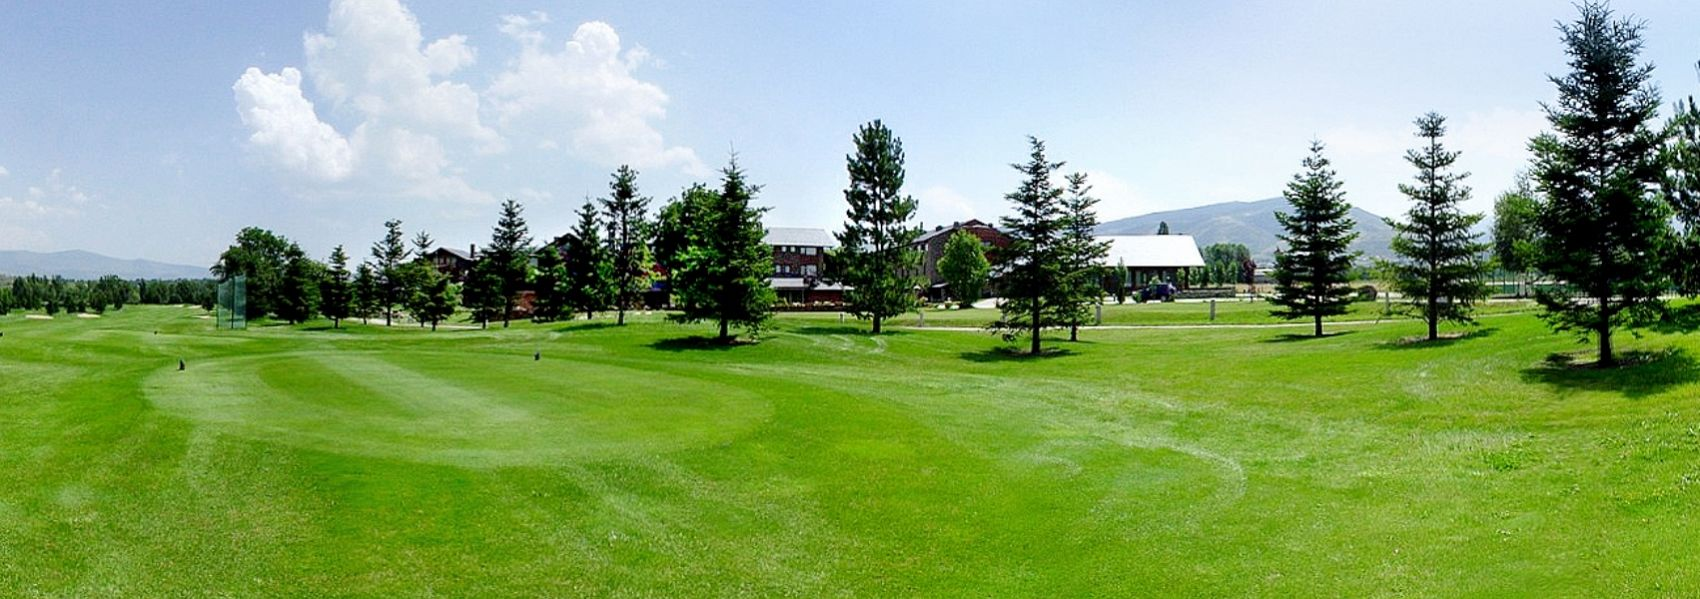 Hotel Fontanals Golf **** - WEB OFICIAL- - Hotel Fontanals Golf